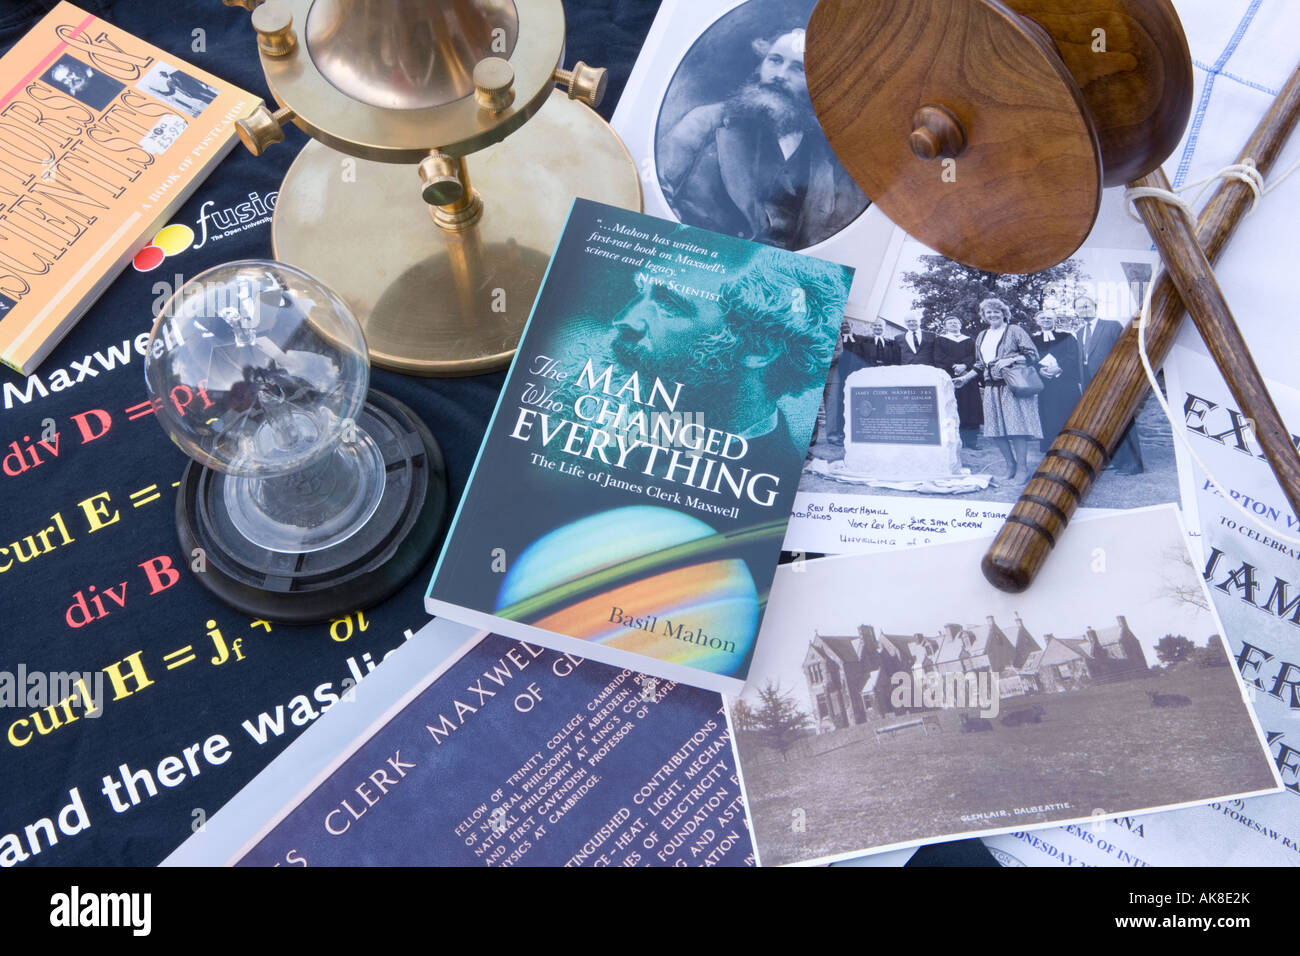 Memorabilia associated with the scientists James Clerk Maxwell including a Radiometer Dynamical Top Deil an Twa Stock Photo